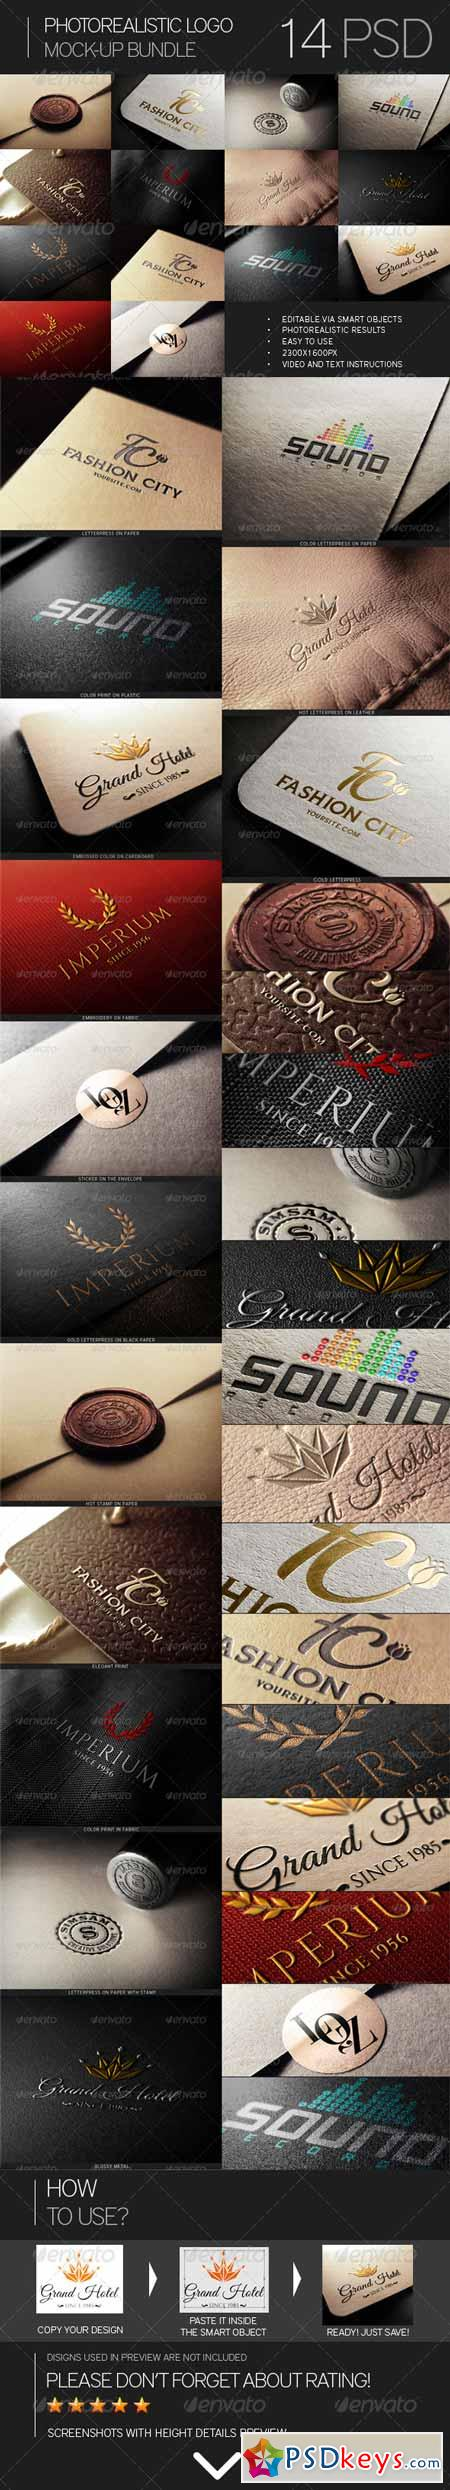 Photorealistic Logo Mock-Up Bundle 7394151 » Free Download